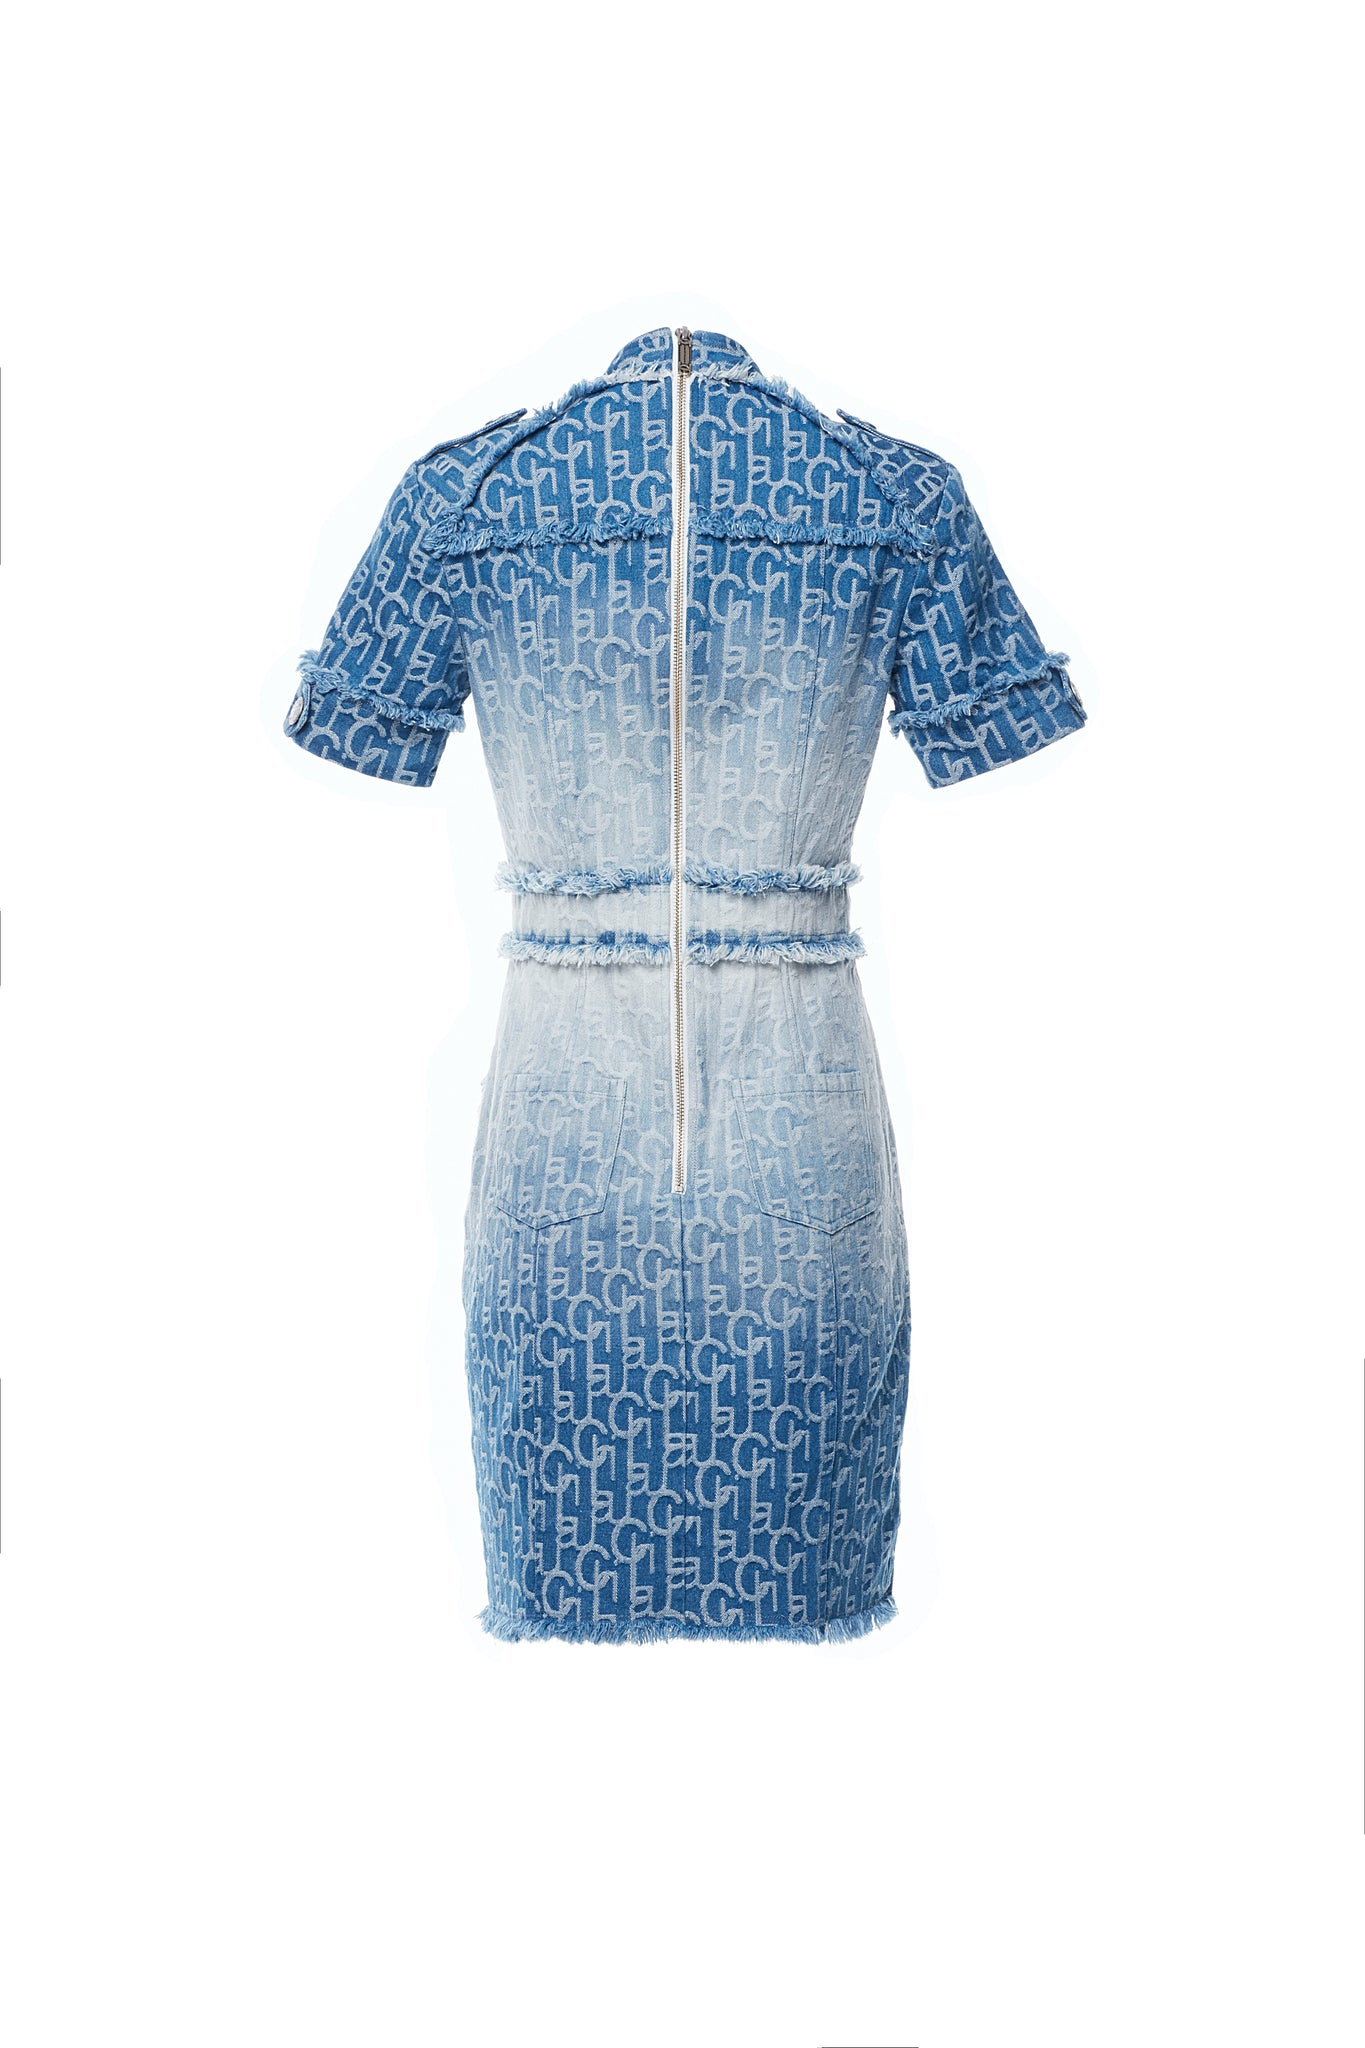 LauLau ChiChi Ombre Denim Jacquard Short Sleeves V Neck Tailored Dress